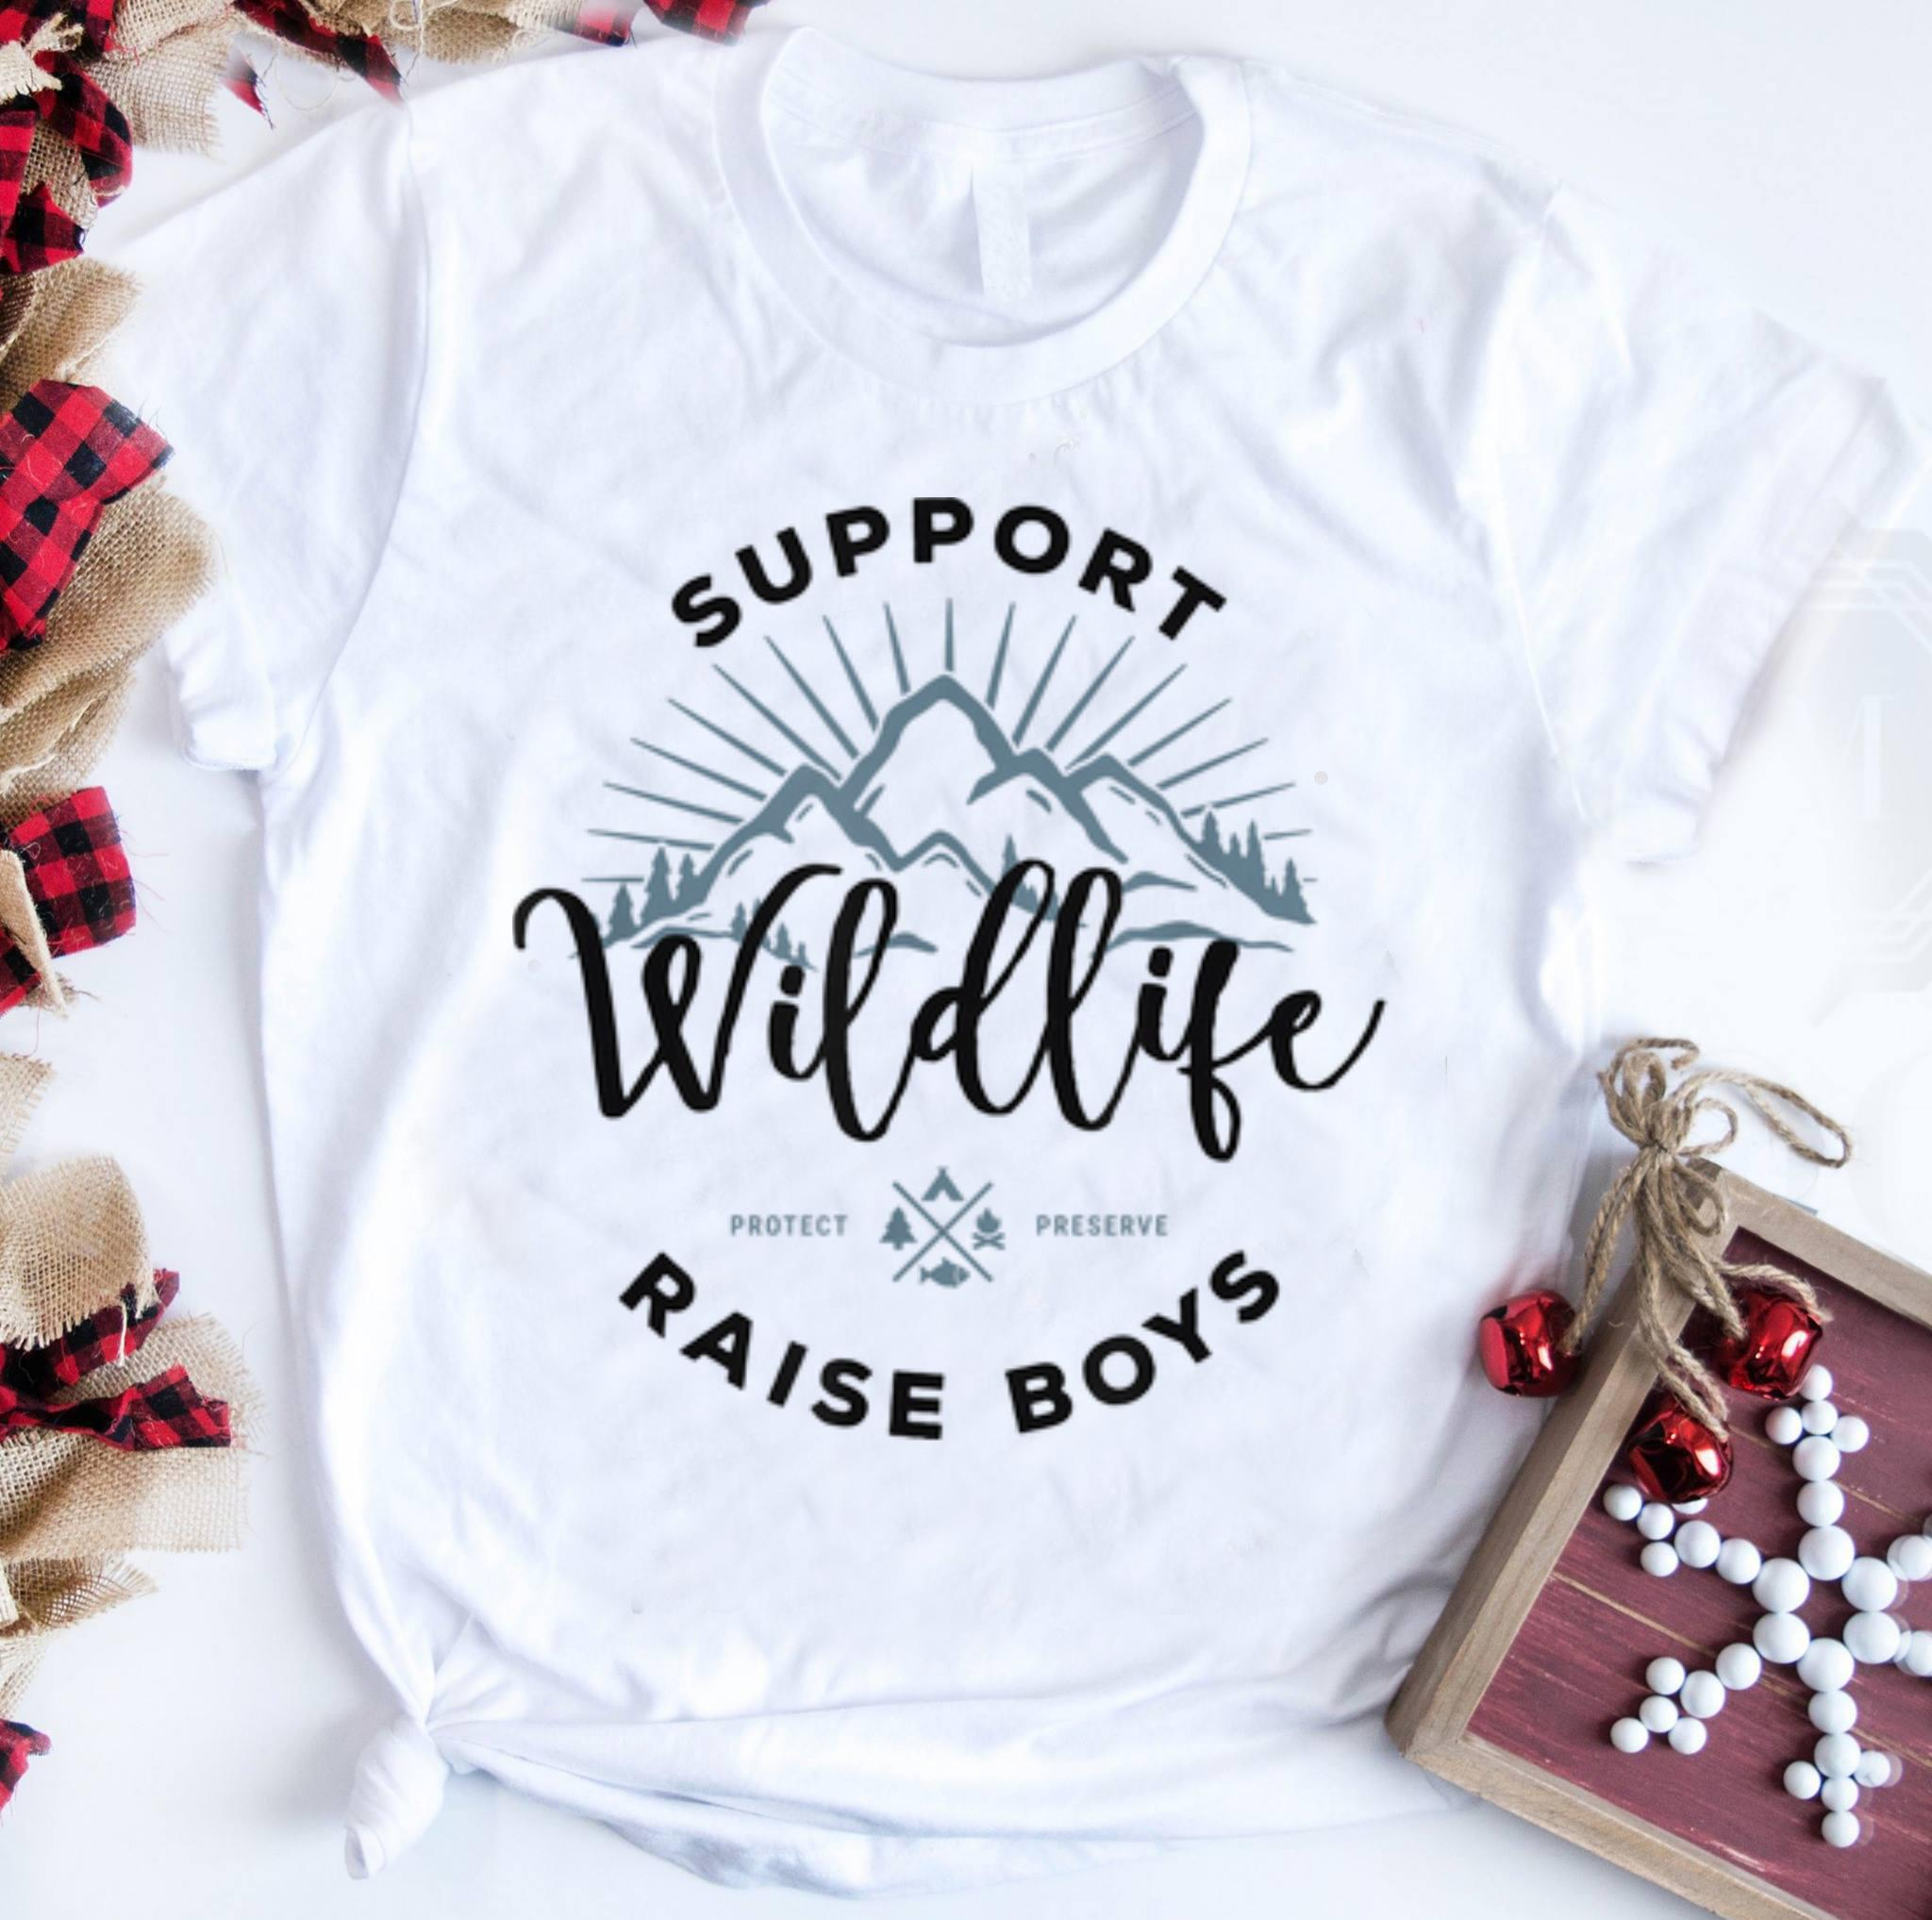 Top Support Wildlife Raise boys shirt 1 - Top Support Wildlife Raise boys shirt